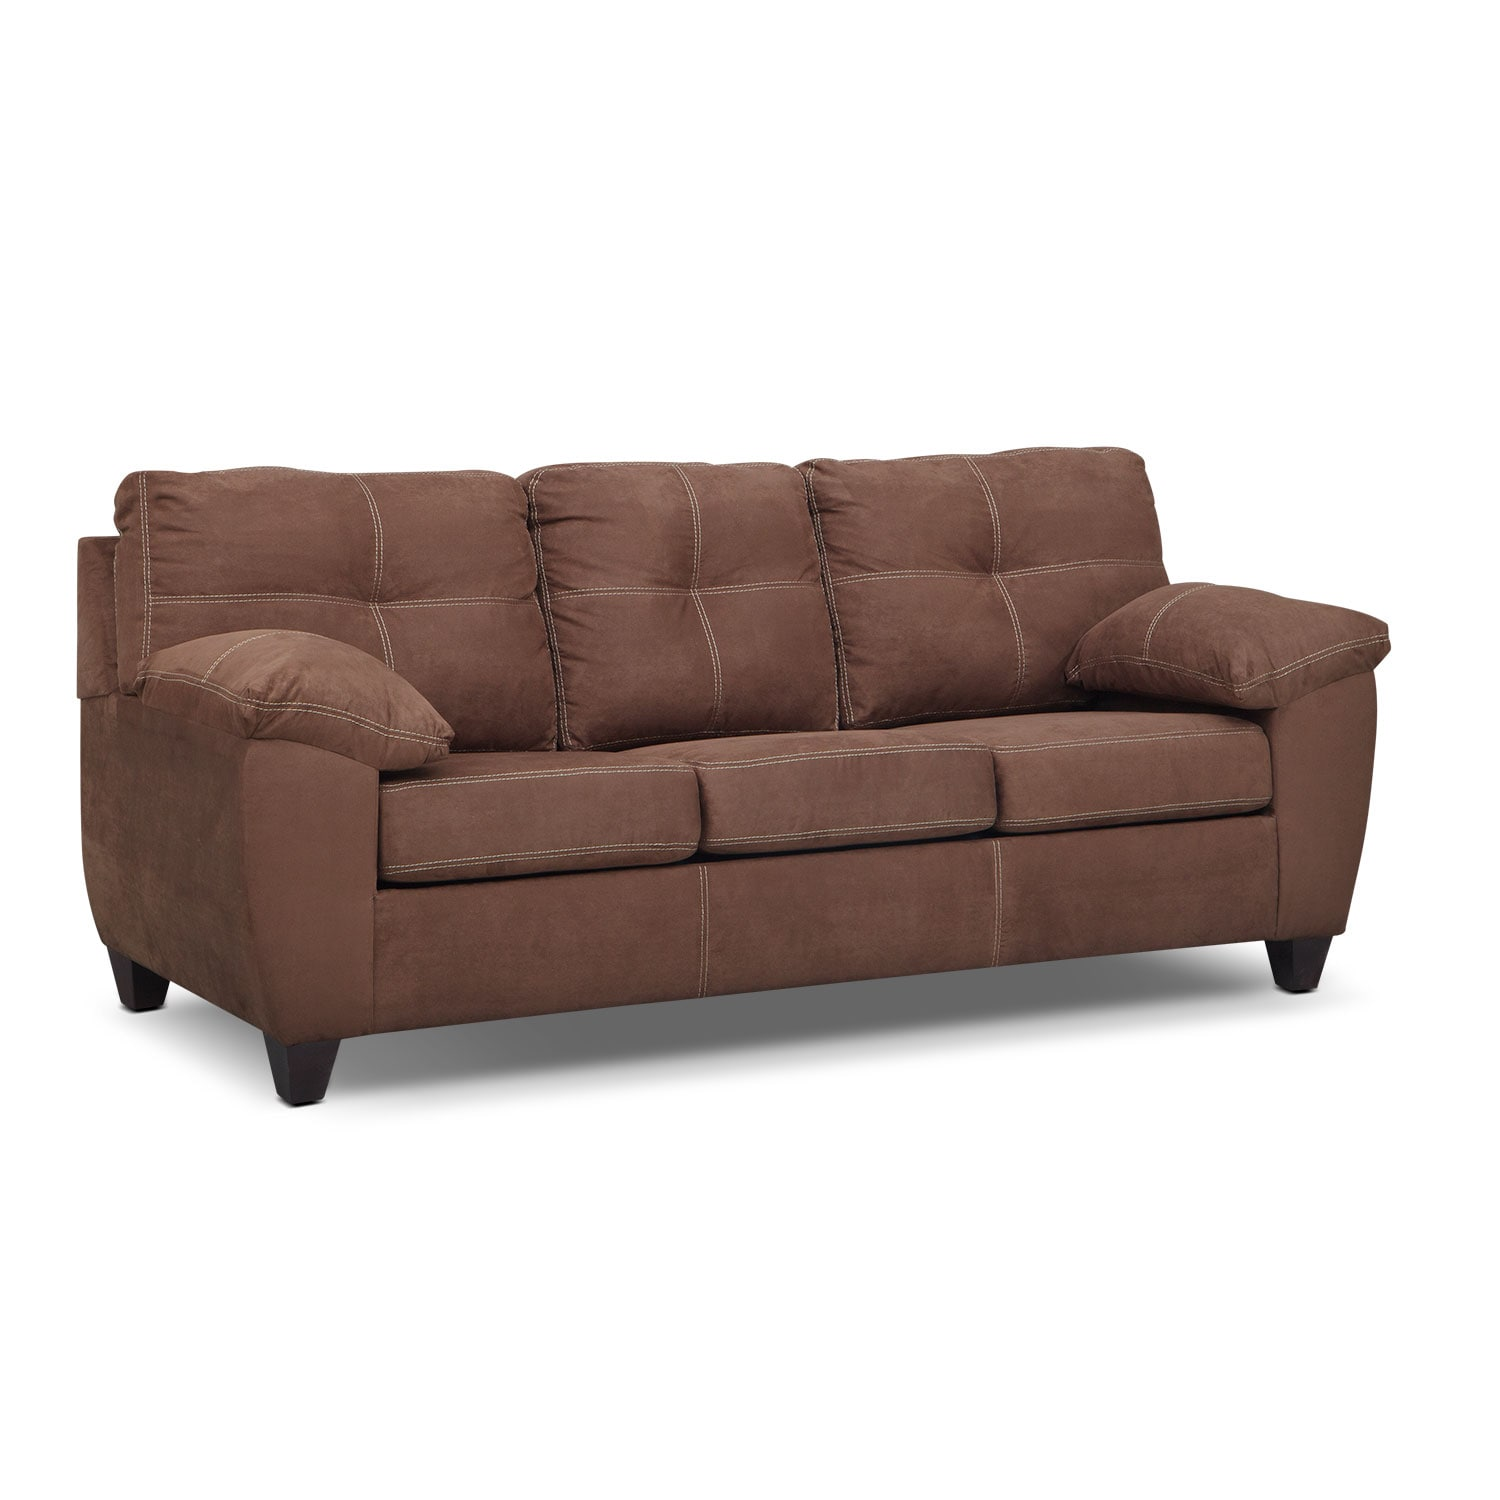 Ricardo queen memory foam sleeper sofa coffee american for Divan furniture